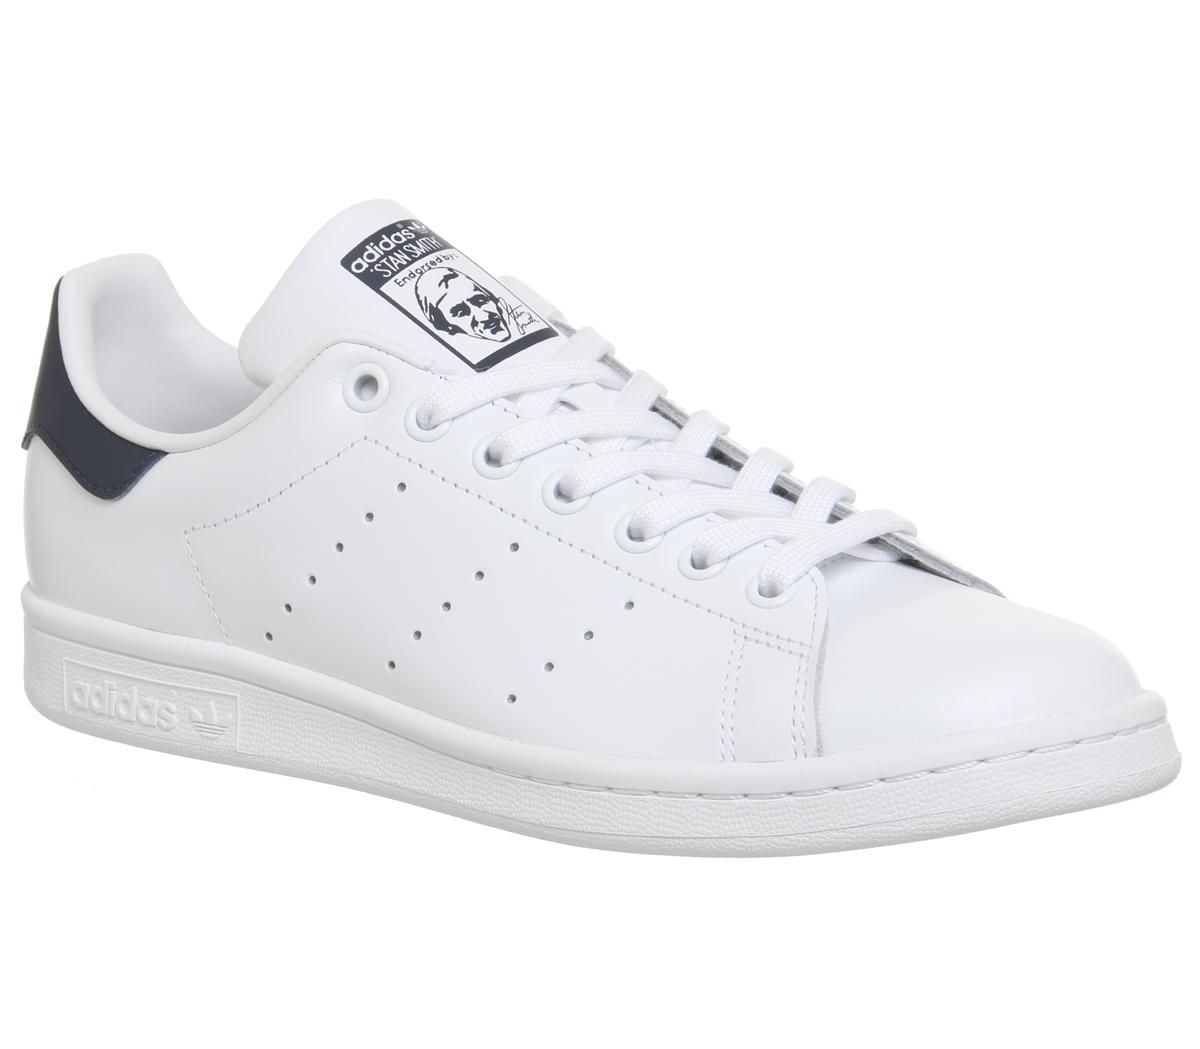 Détails sur Femmes adidas Stan Smith Flash Baskets Blanc Bleu Baskets